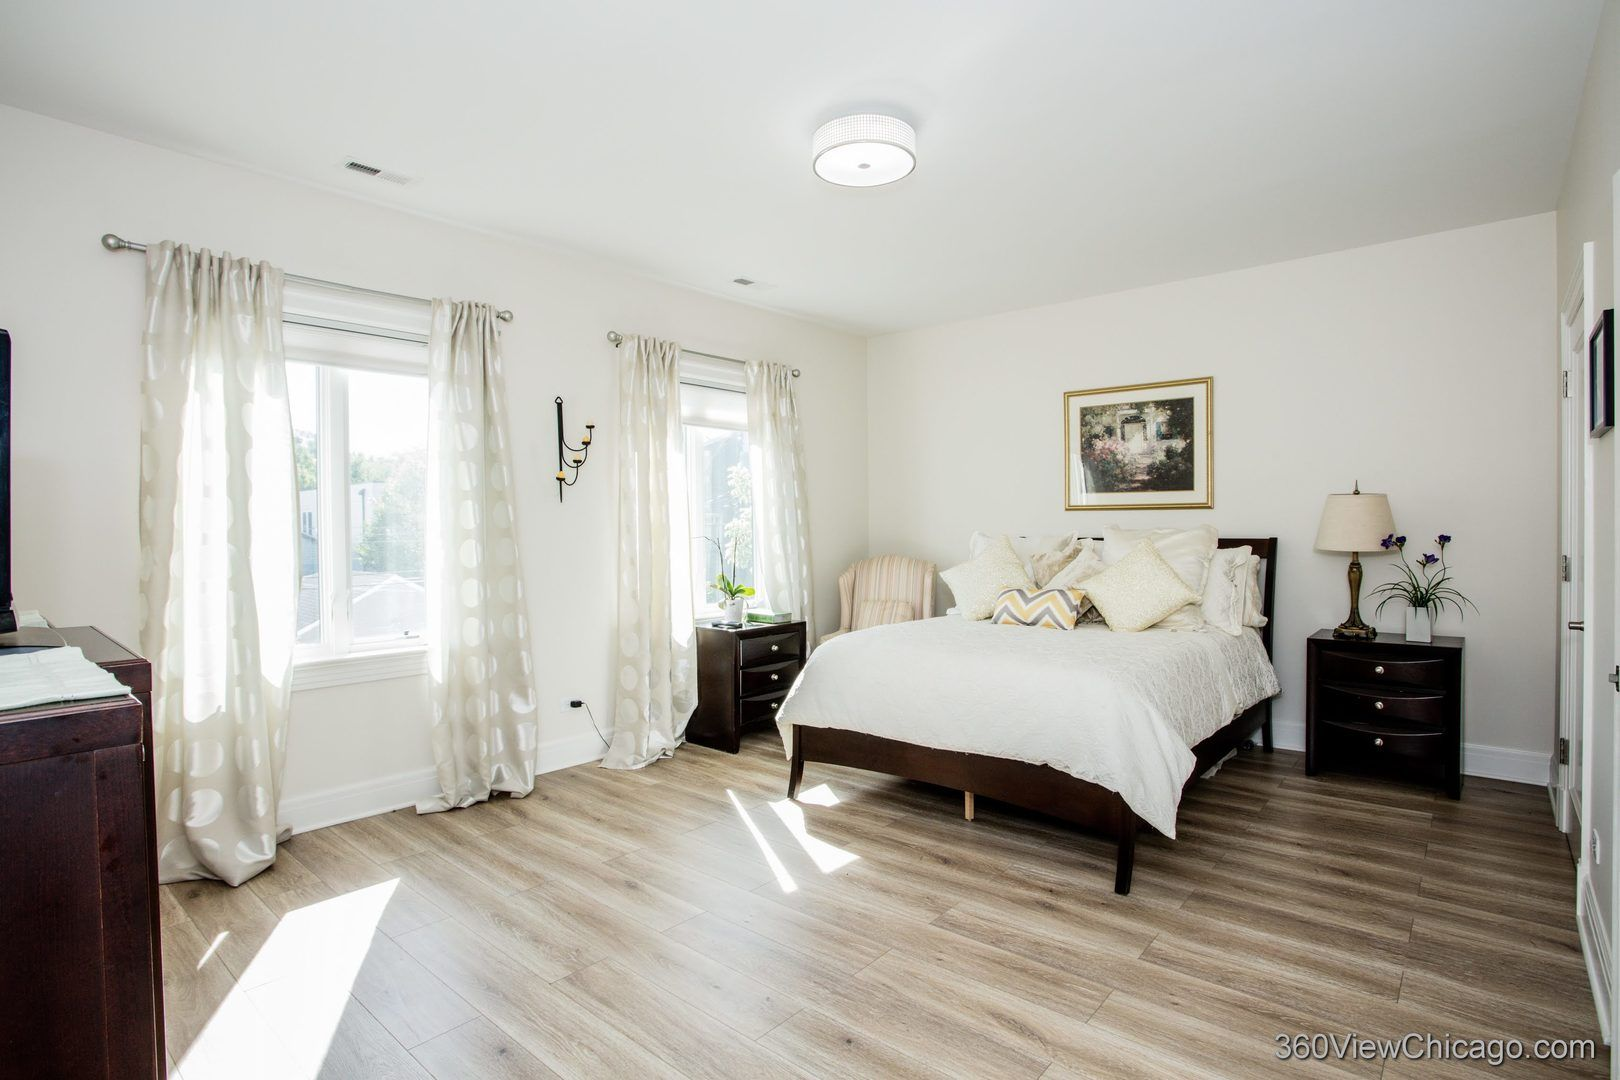 Photo 17: Photos: 1733 Troy Street in Chicago: CHI - Humboldt Park Residential for sale ()  : MLS®# 10911567